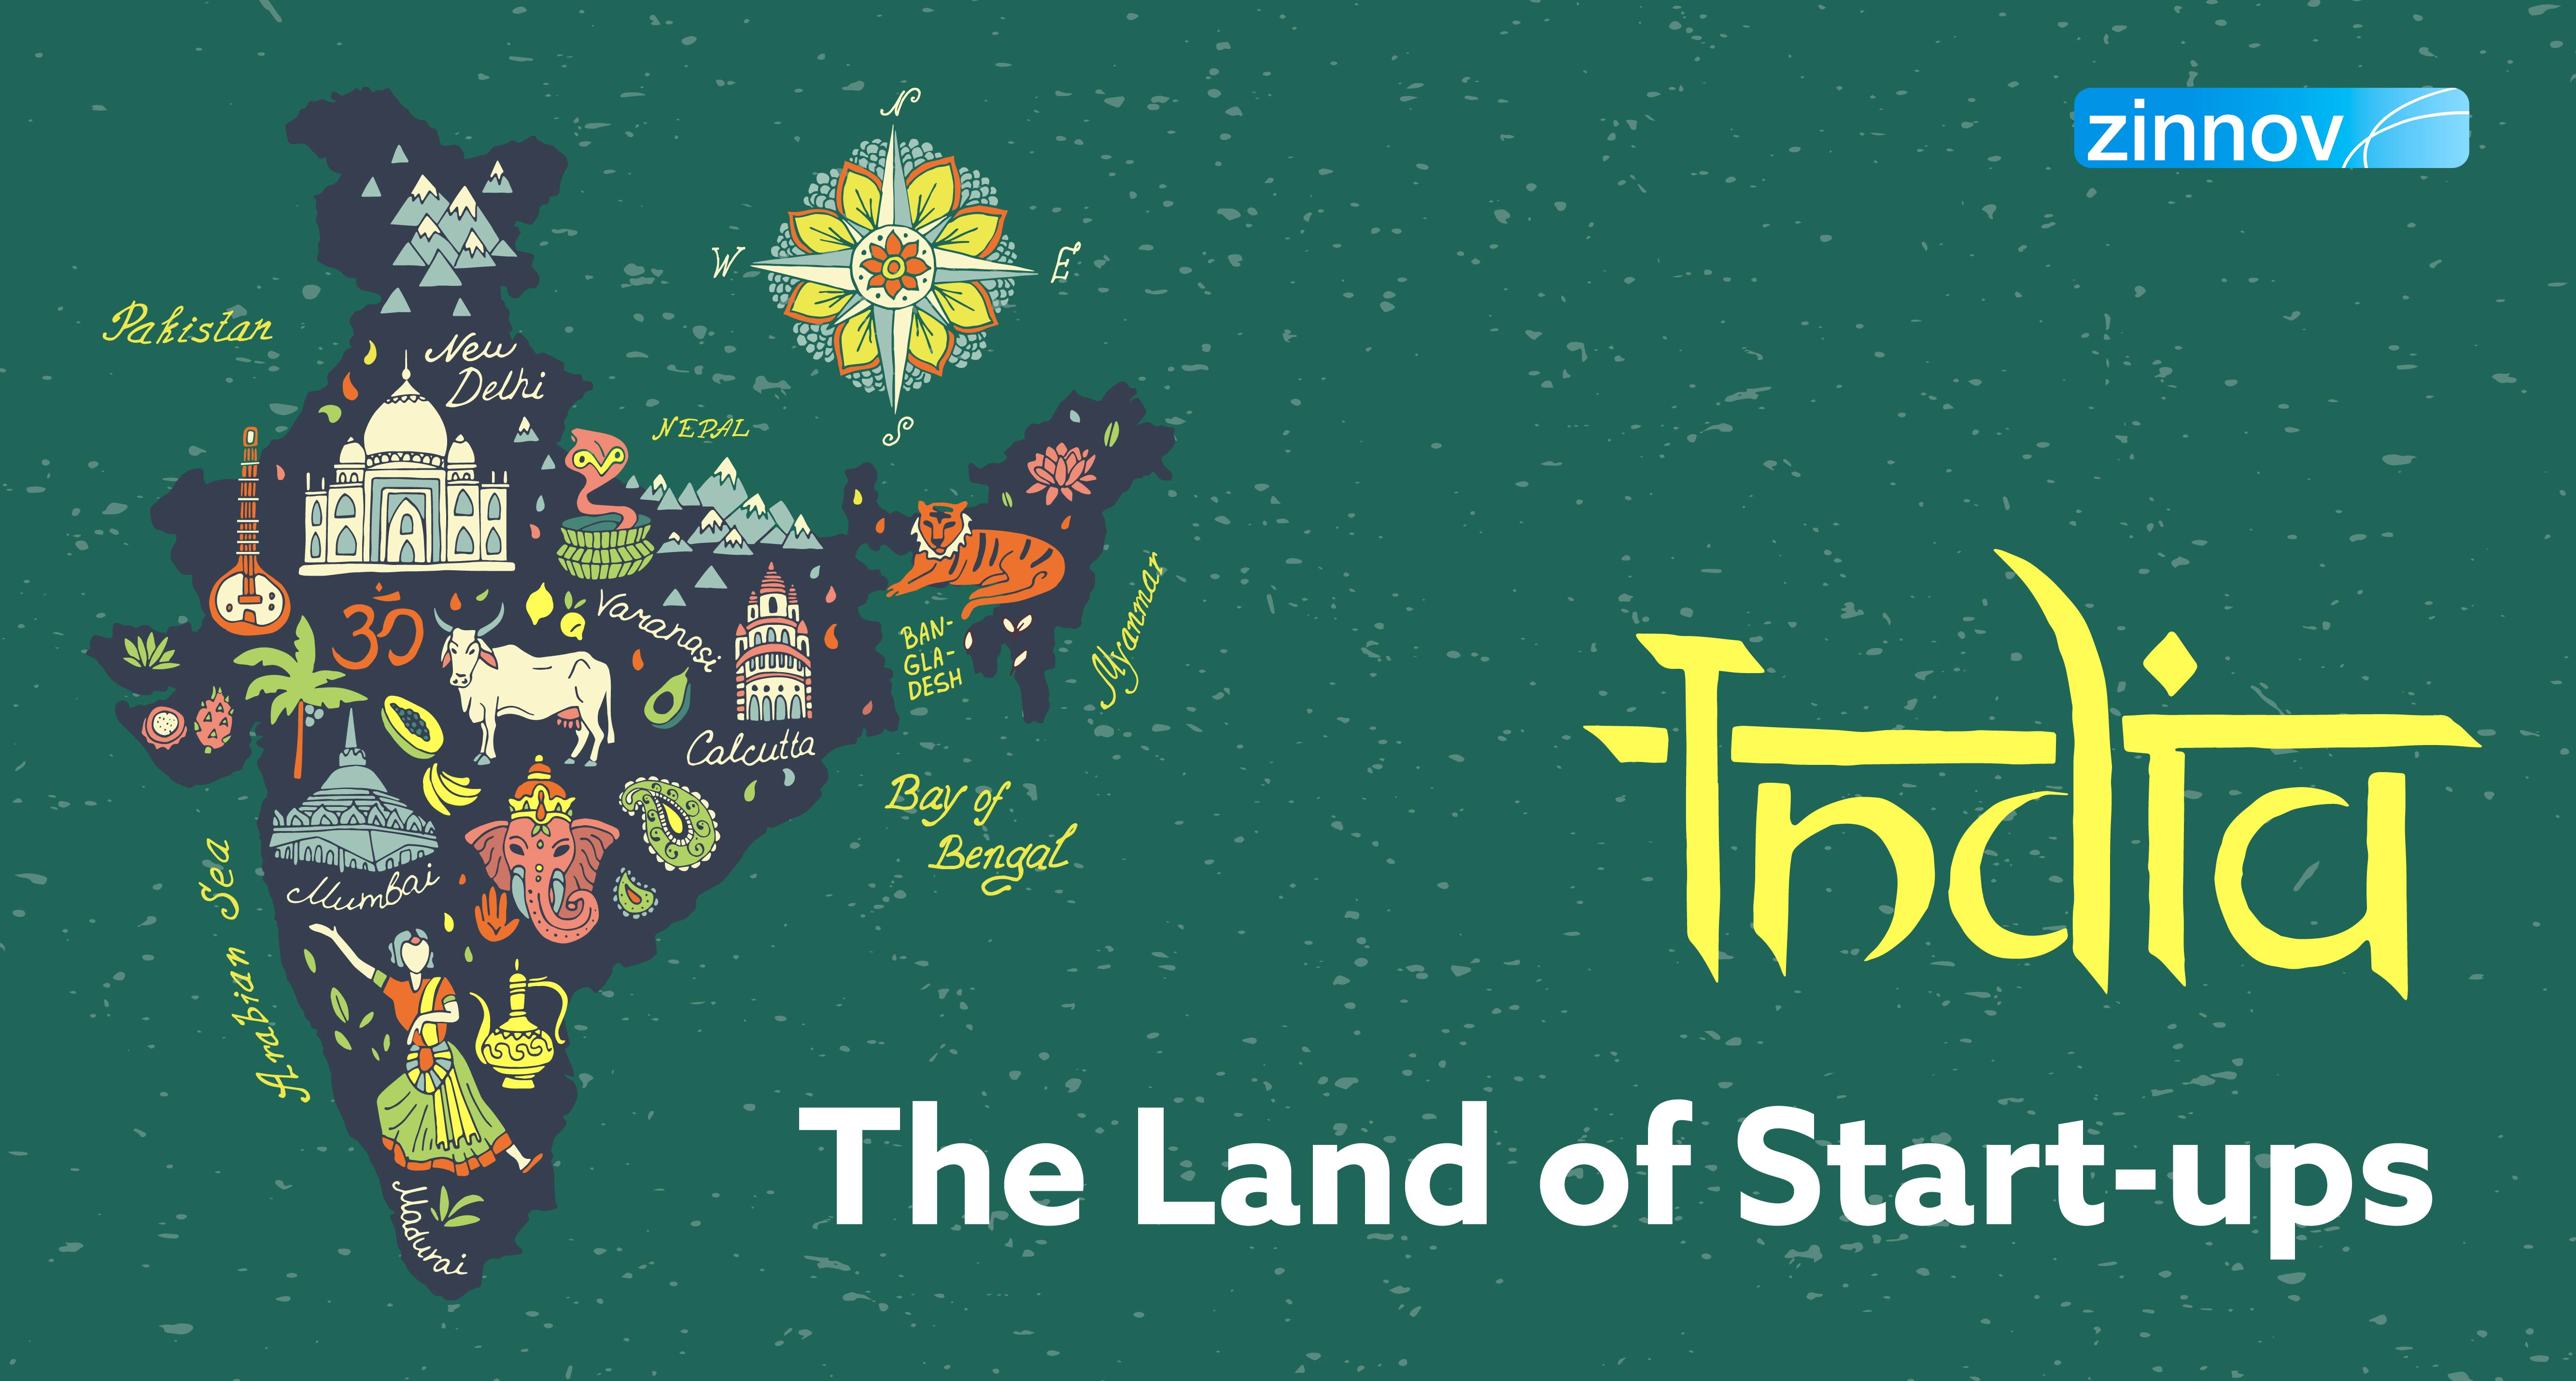 The Start-up Ecosystem in India - A compelling narrative